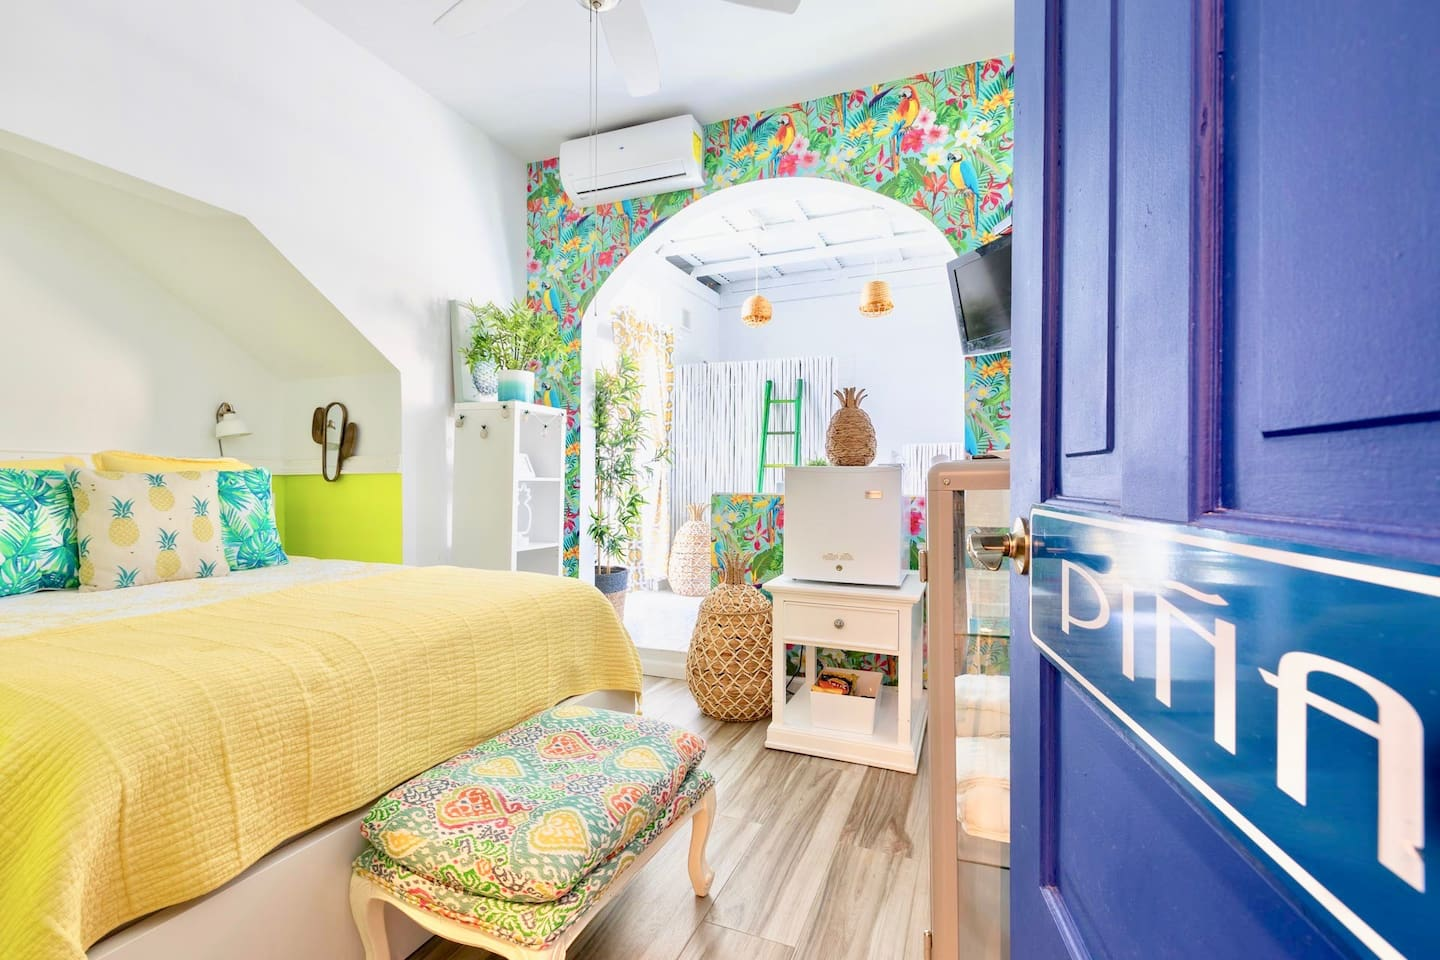 The Piña room has a queen bed, a flat screen TV, a private bathroom and balcony, a mini fridge, a hair dryer, iron and board and a safe. The Piña room awaits your visit!